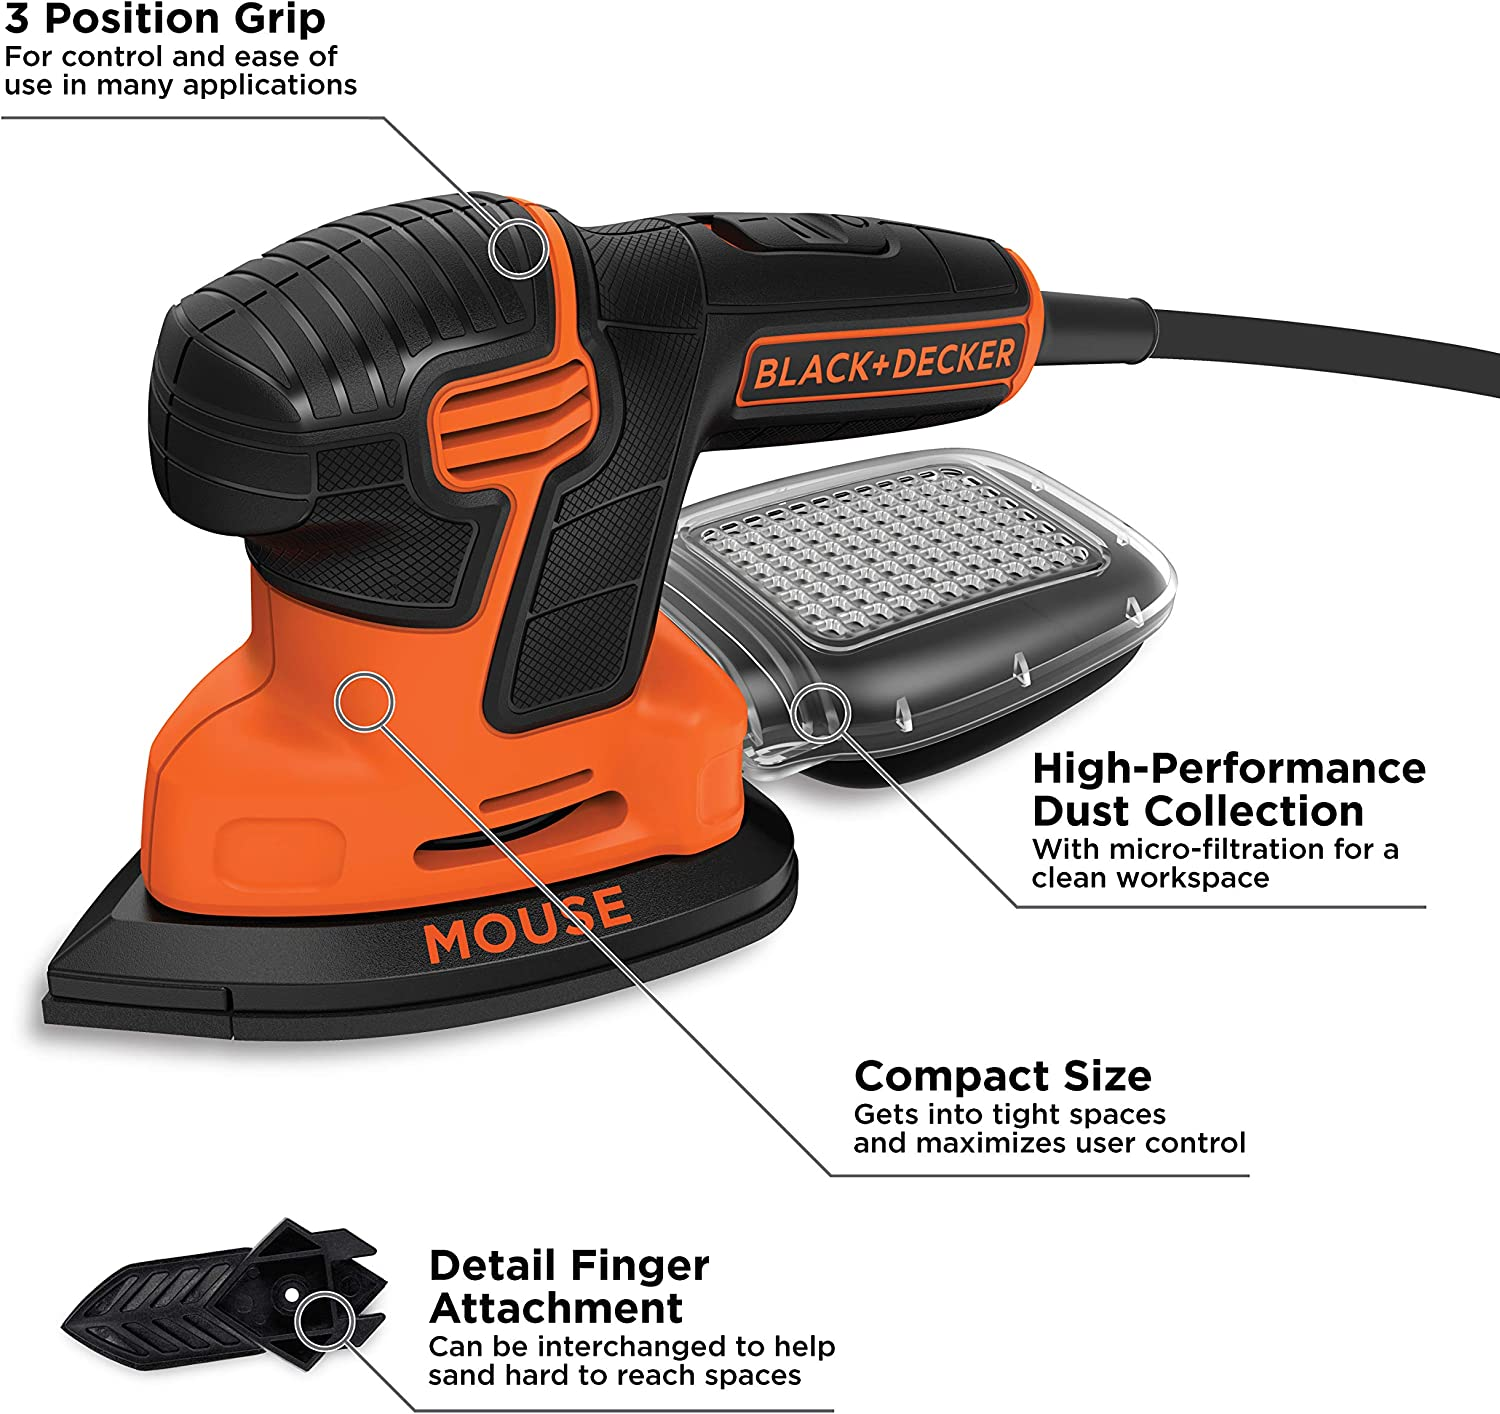 BLACK+DECKER BDEMS600 Detail Sanders product image 2